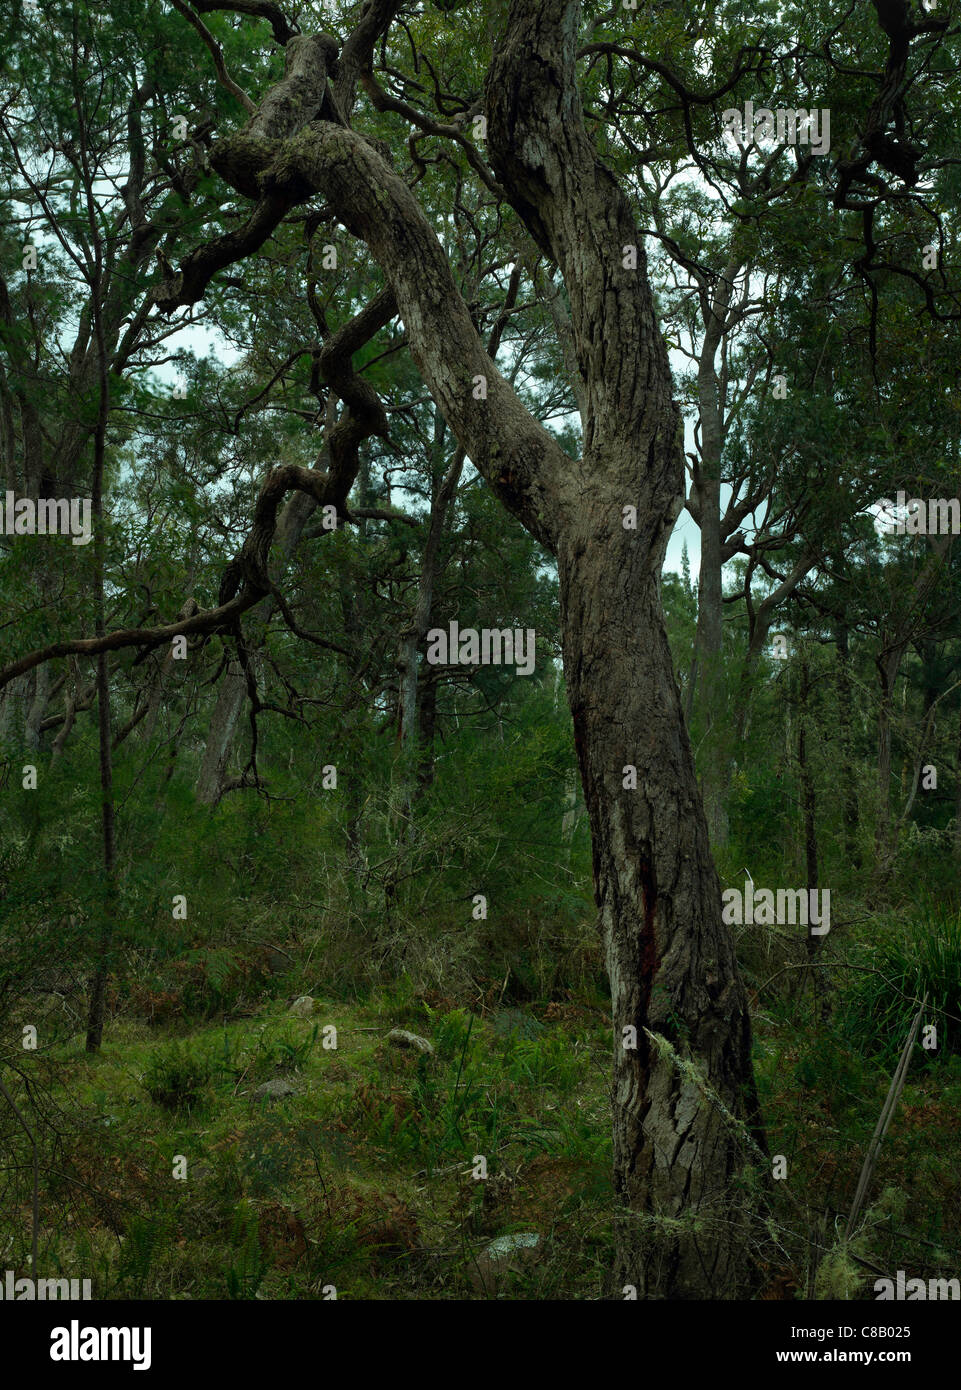 Eucalypt tree in Wadbilliga National Park, Nsw Australia - Stock Image